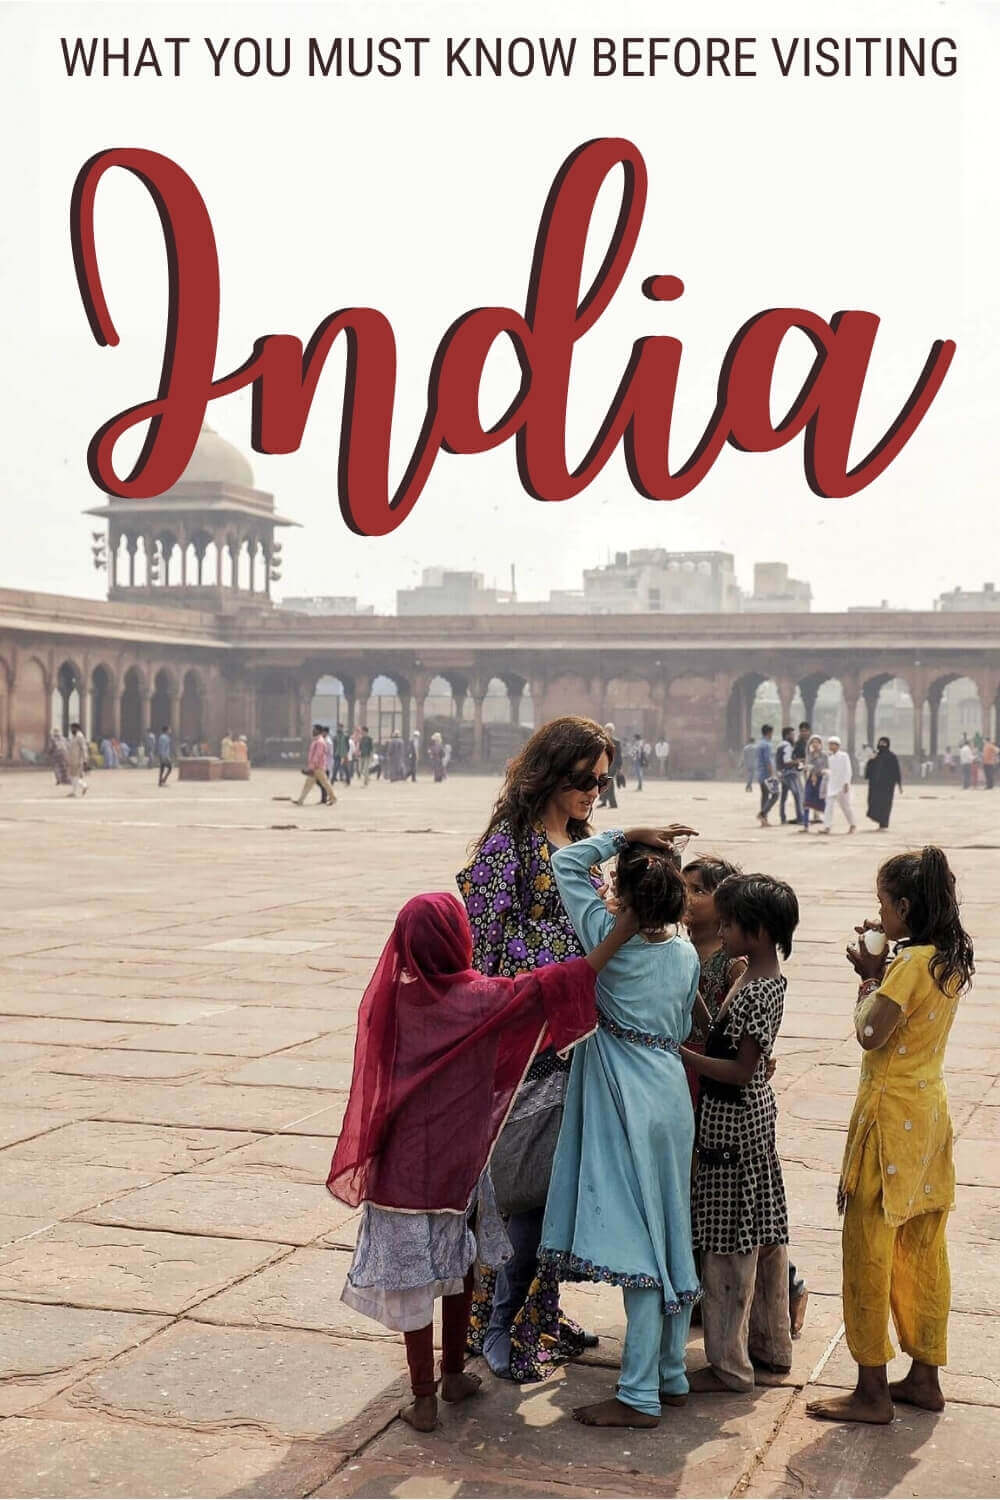 Discover everything you must know before visiting India - via @clautavani